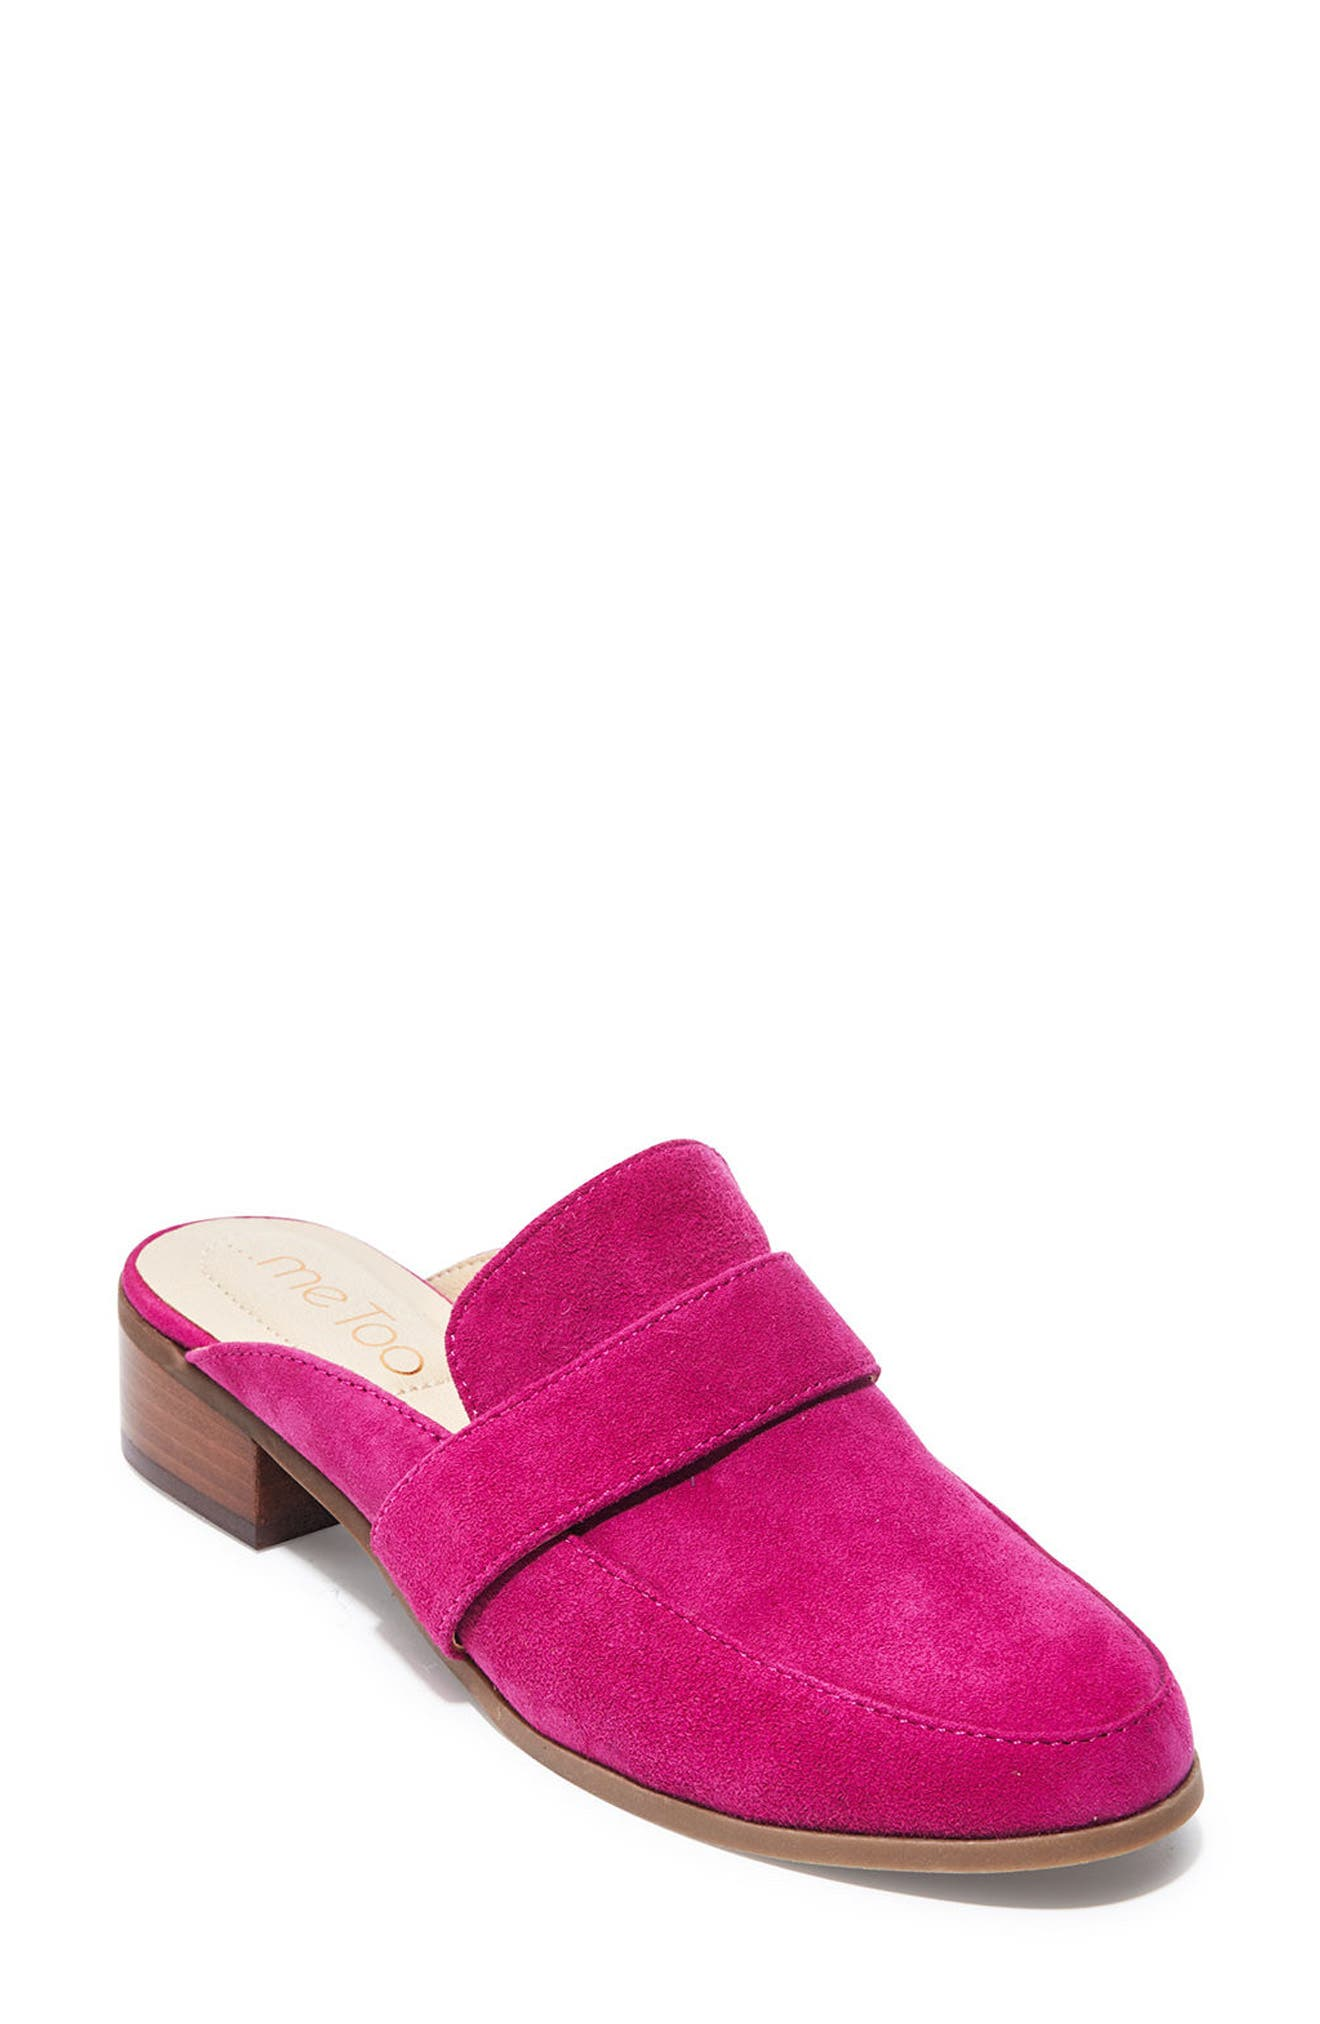 Jada Loafer Mule,                             Main thumbnail 1, color,                             Fuchsia Suede